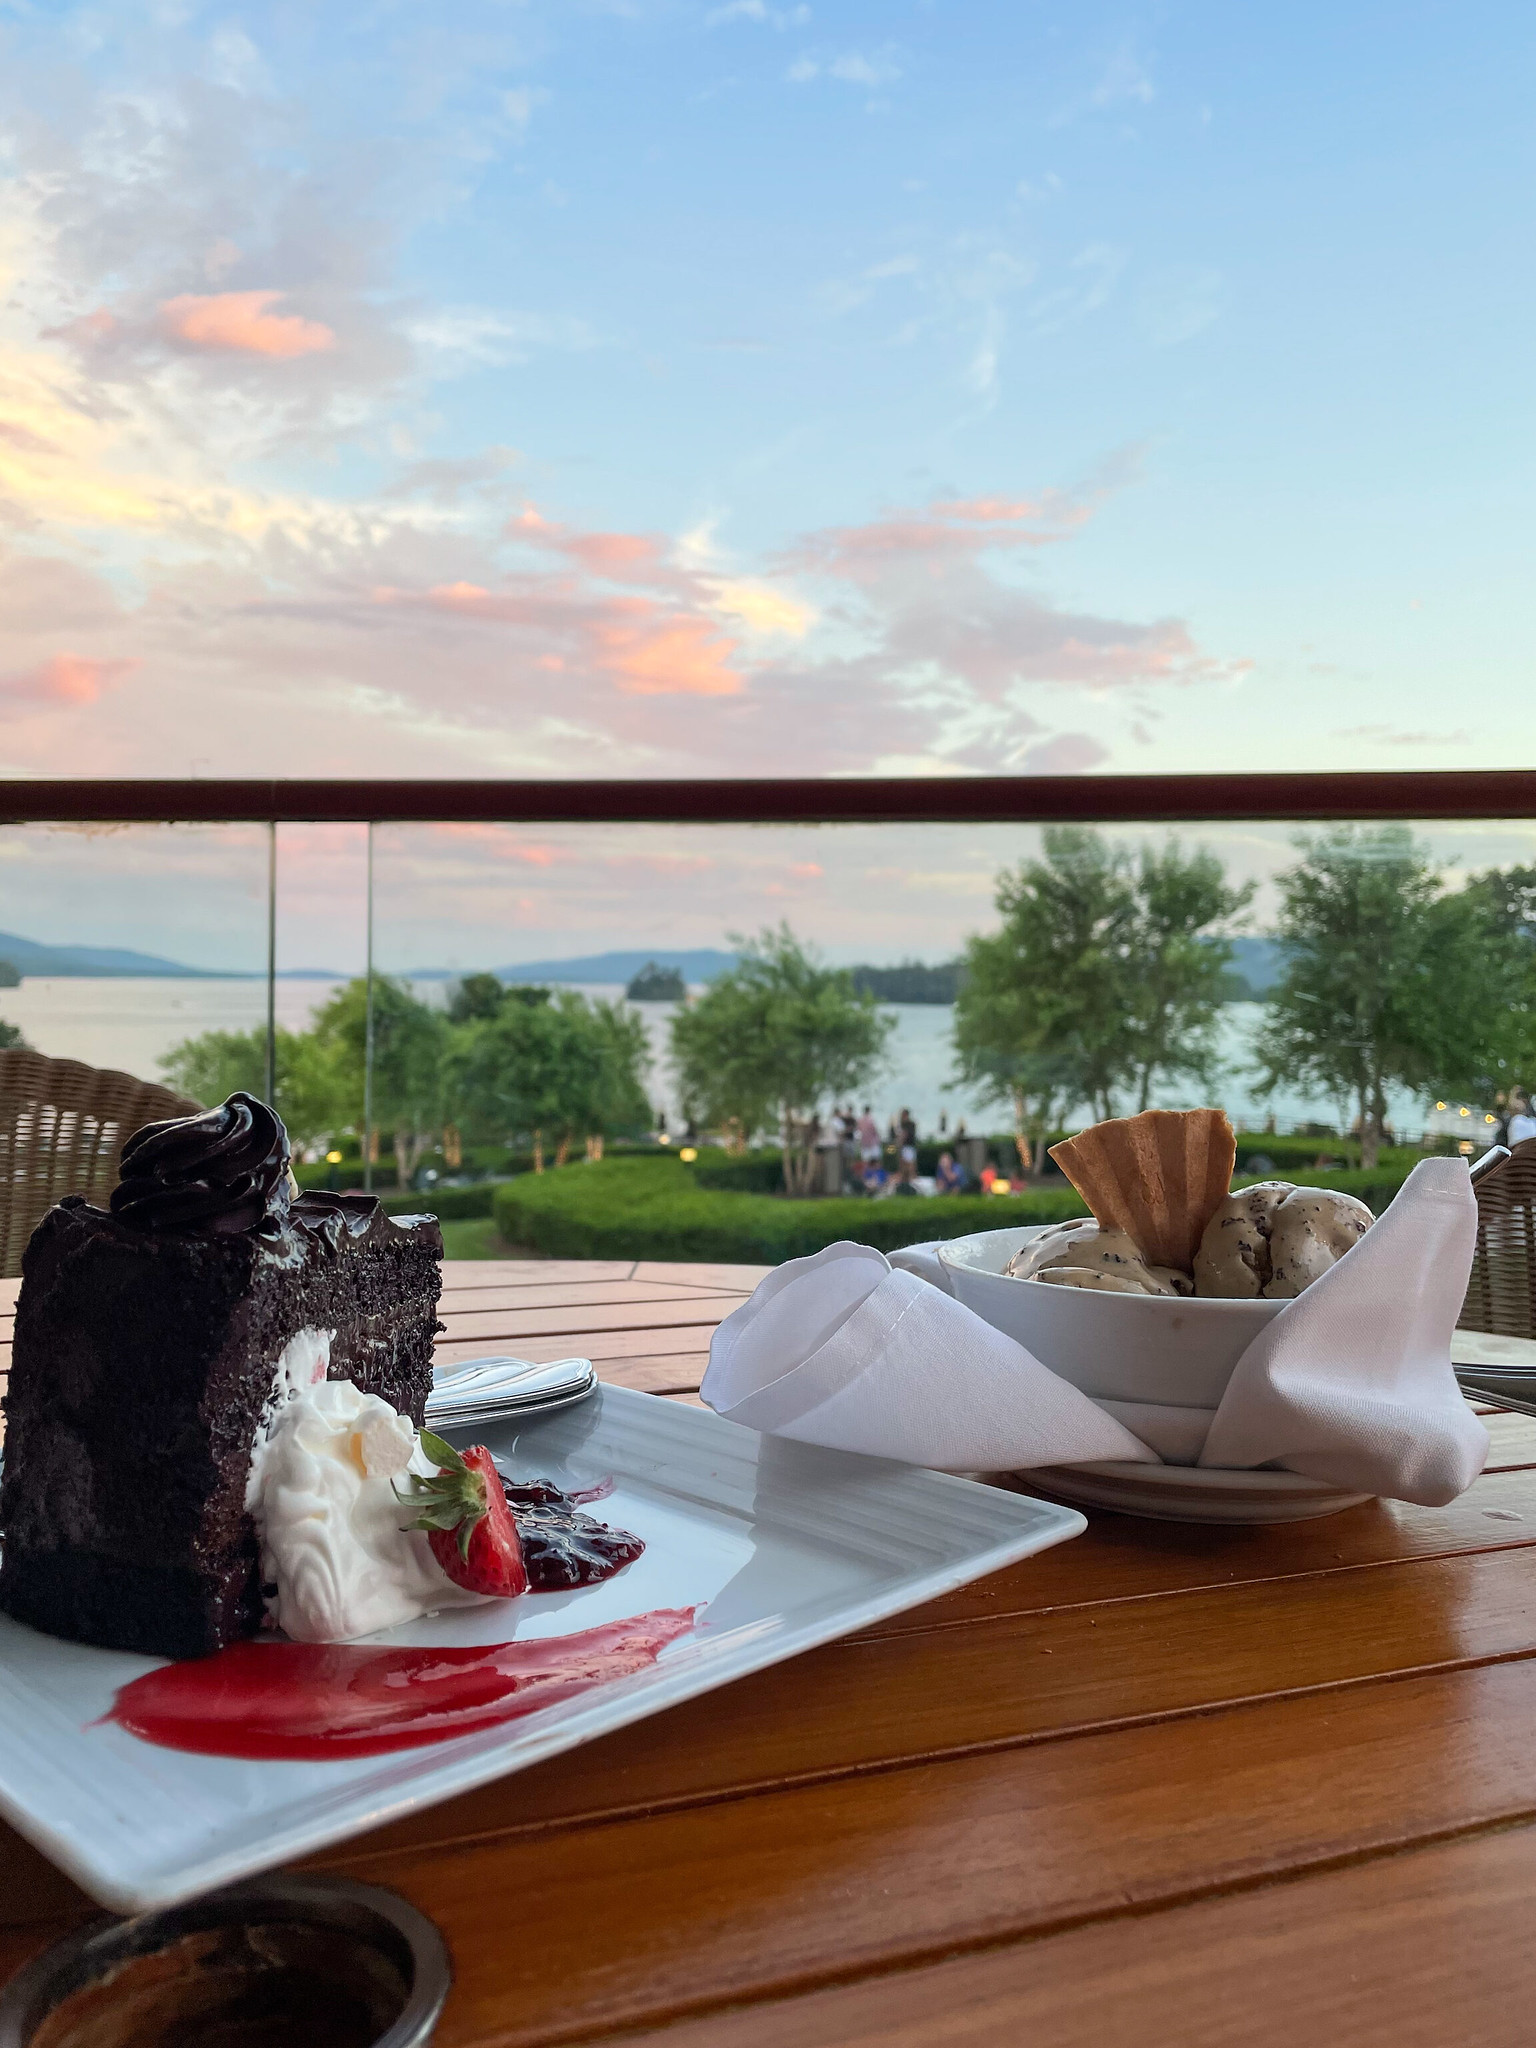 What to Eat in Lake George | Best Lake George Restaurants | 5 Reasons to Visit The Sagamore Resort on Lake George, NY this Summer | Where to Stay in Lake George | Adirondacks Vacation | Upstate New York Travel Guide | Top Luxury Resort in the Northeast | American Road Trip Ideas | Best Place to Stay in Bolton Landing, New York